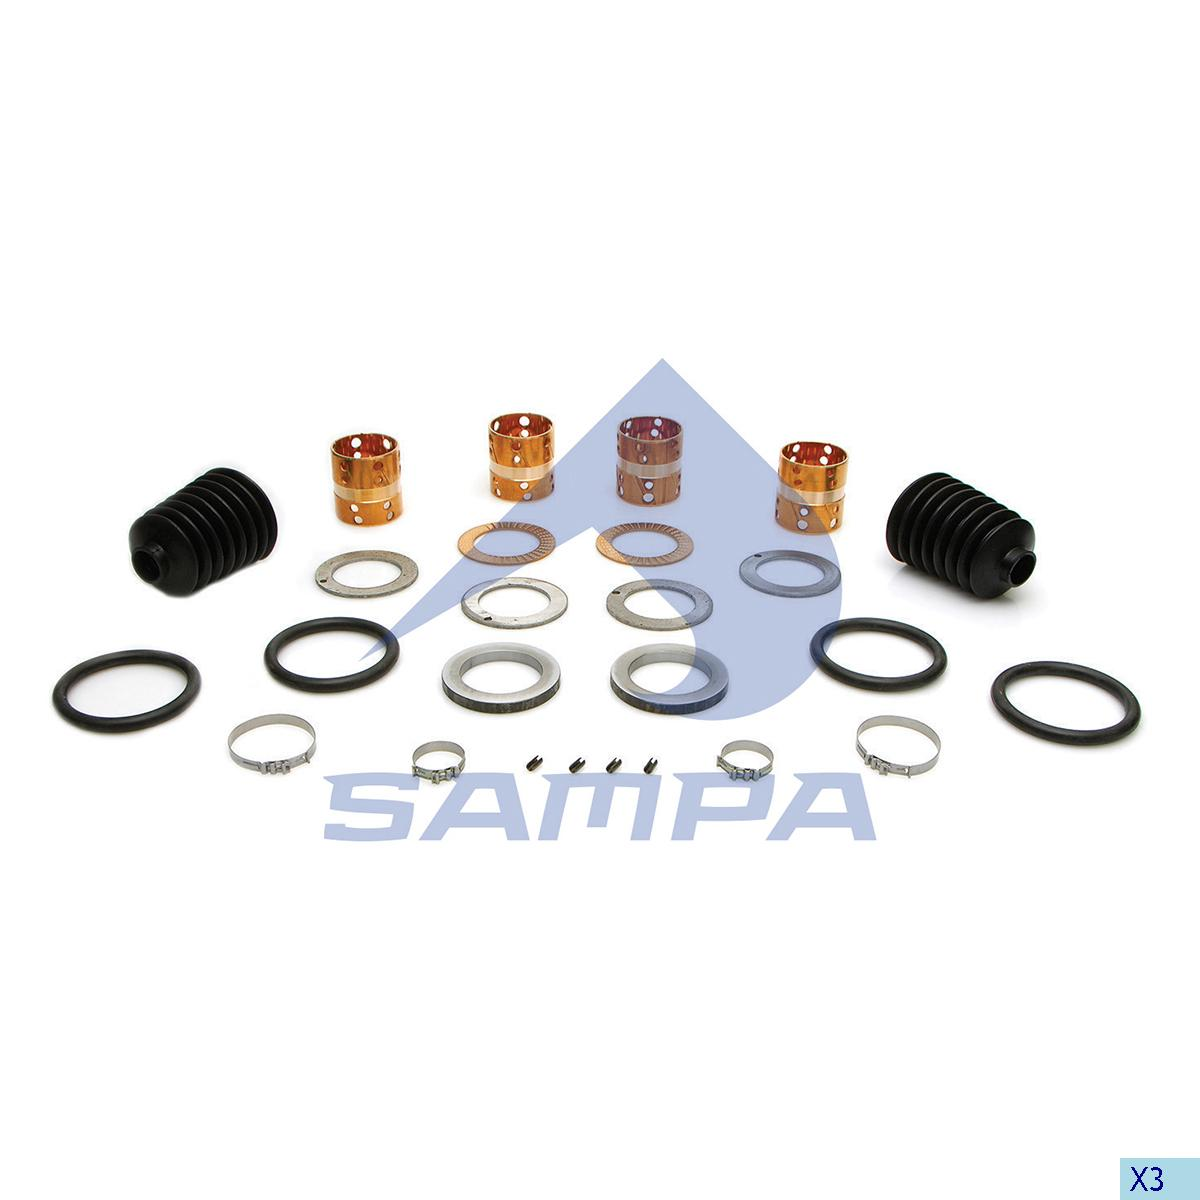 King Pin Kit, Axle Steering Knuckle, Sauer Achsen, Power Unit